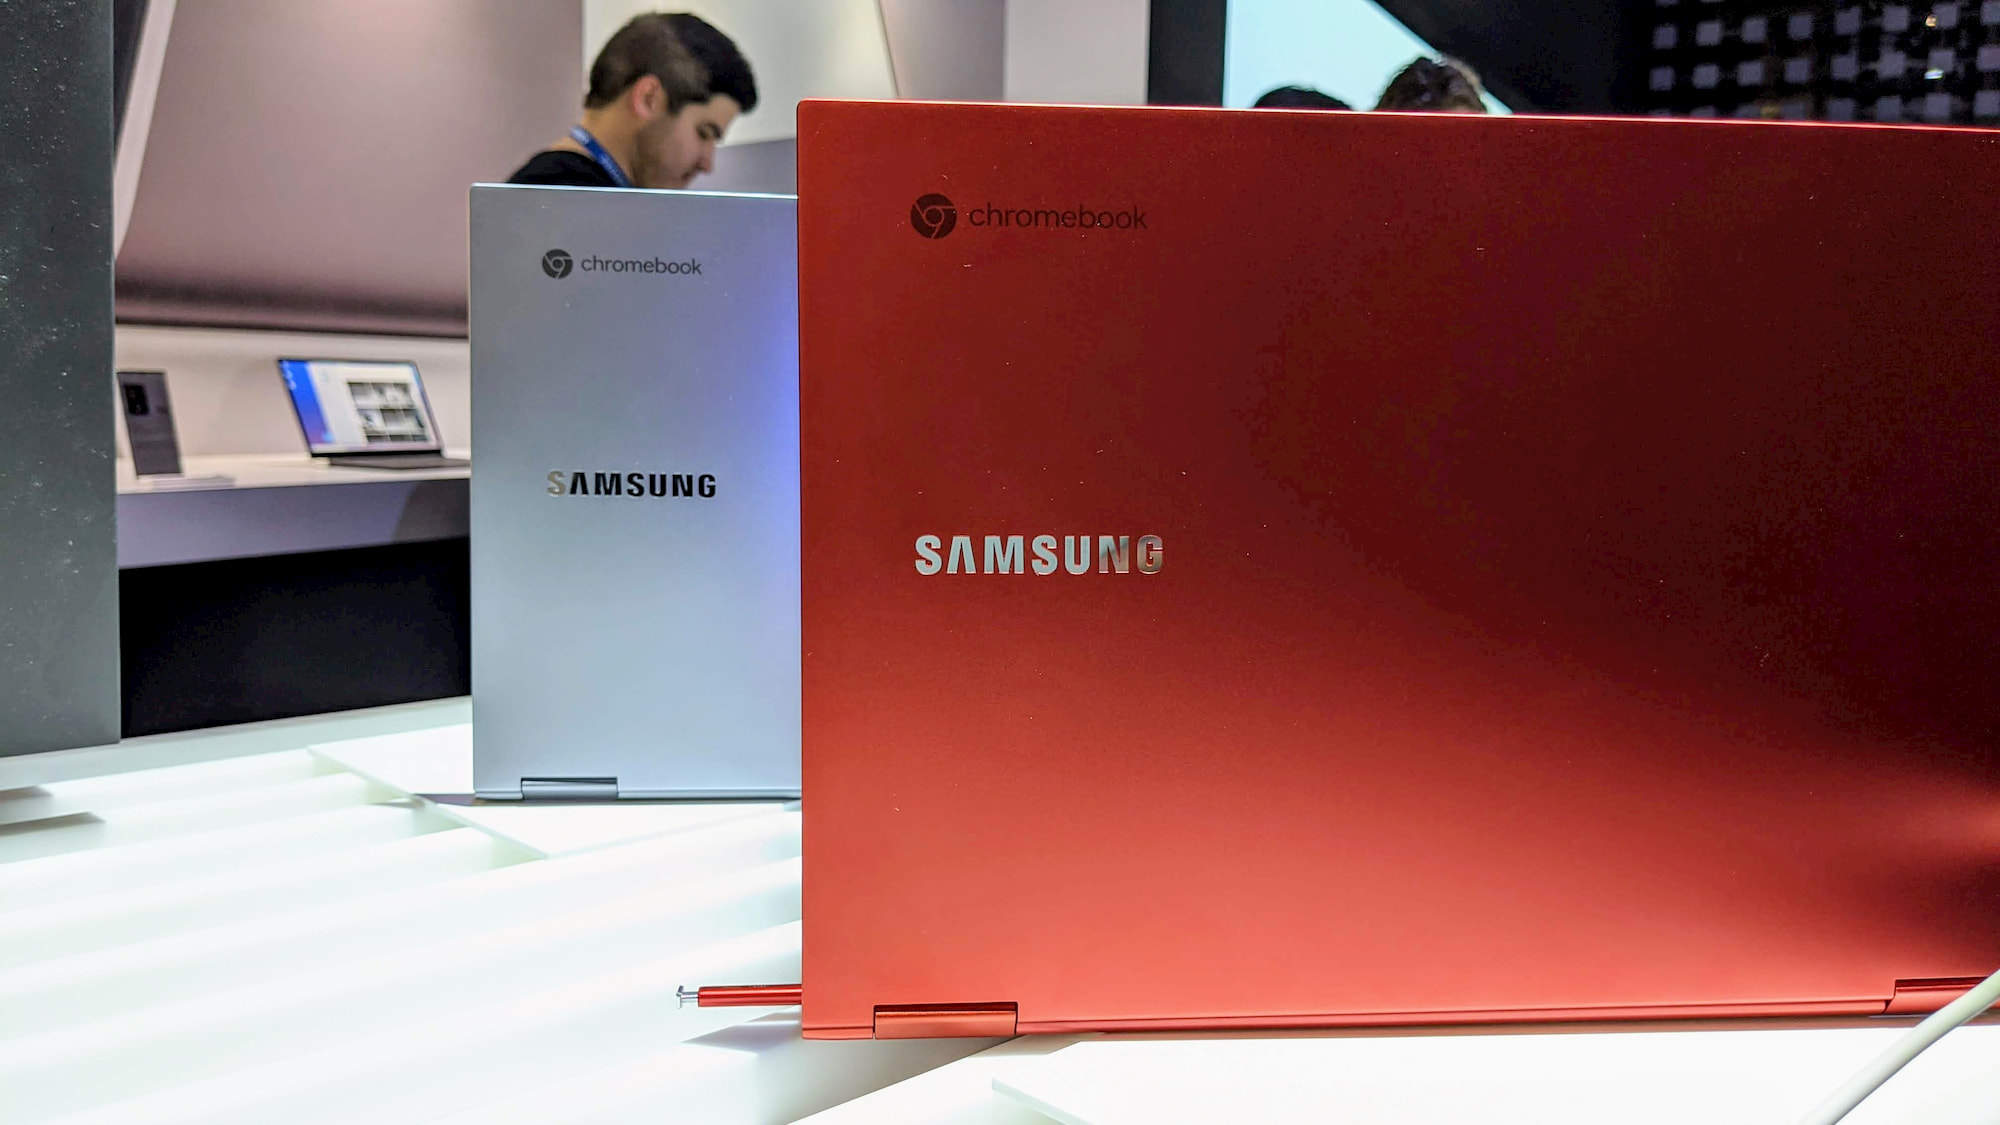 [Update] At long last, you can finally purchase the Samsung Galaxy Chromebook